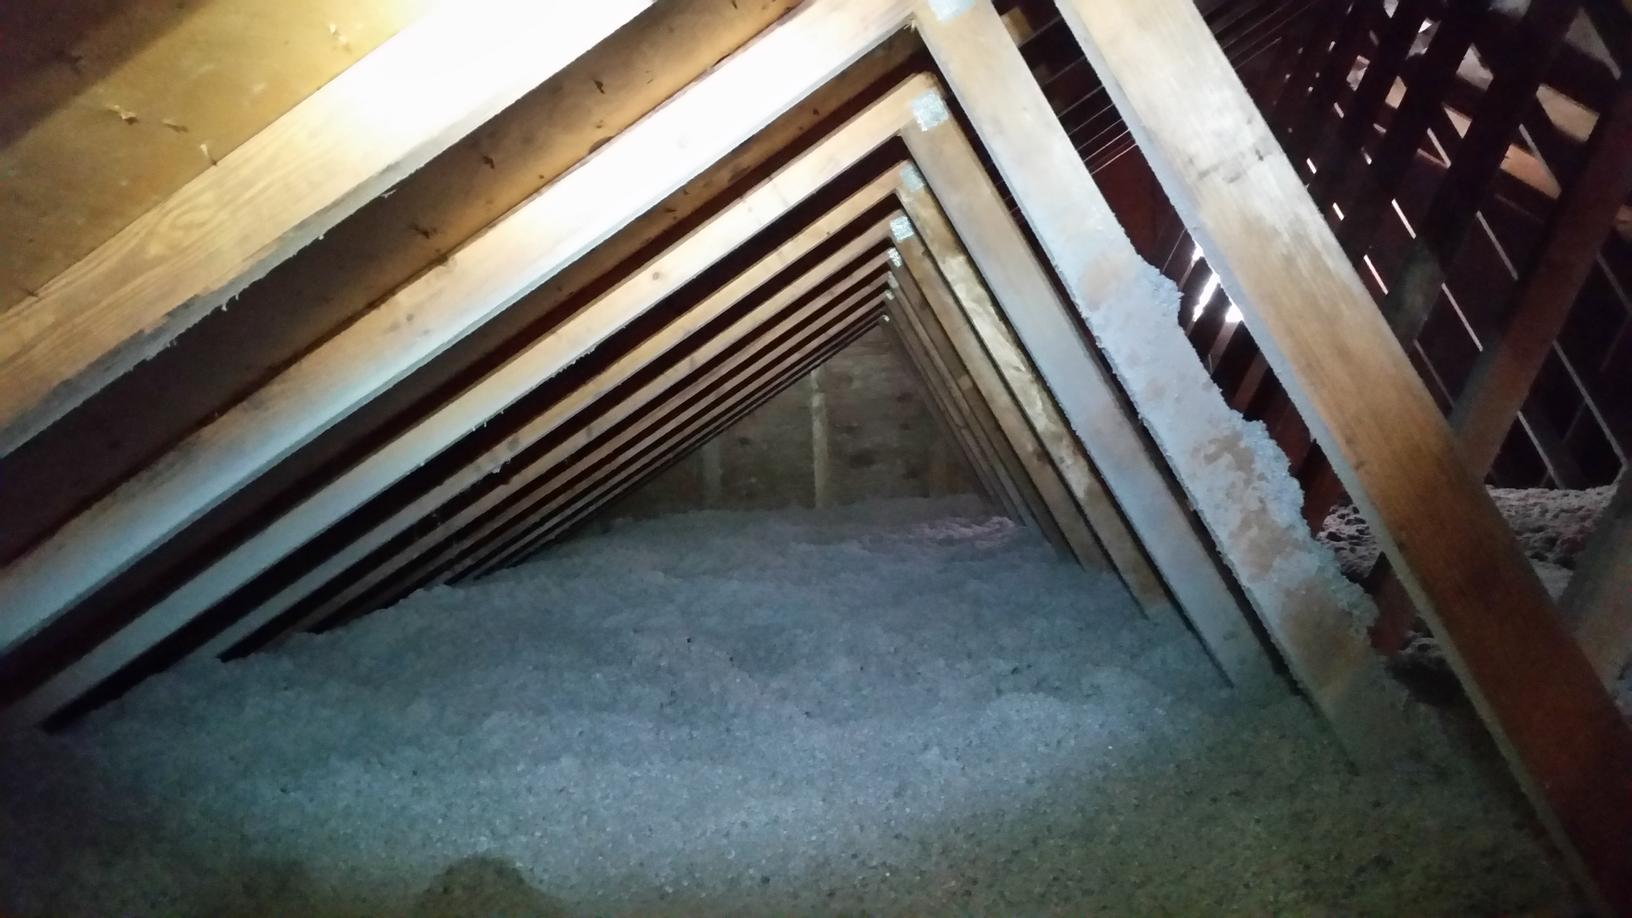 TAP installed in Toms River after mice infest and soil attic | Toms River, NJ Pest Control - After Photo